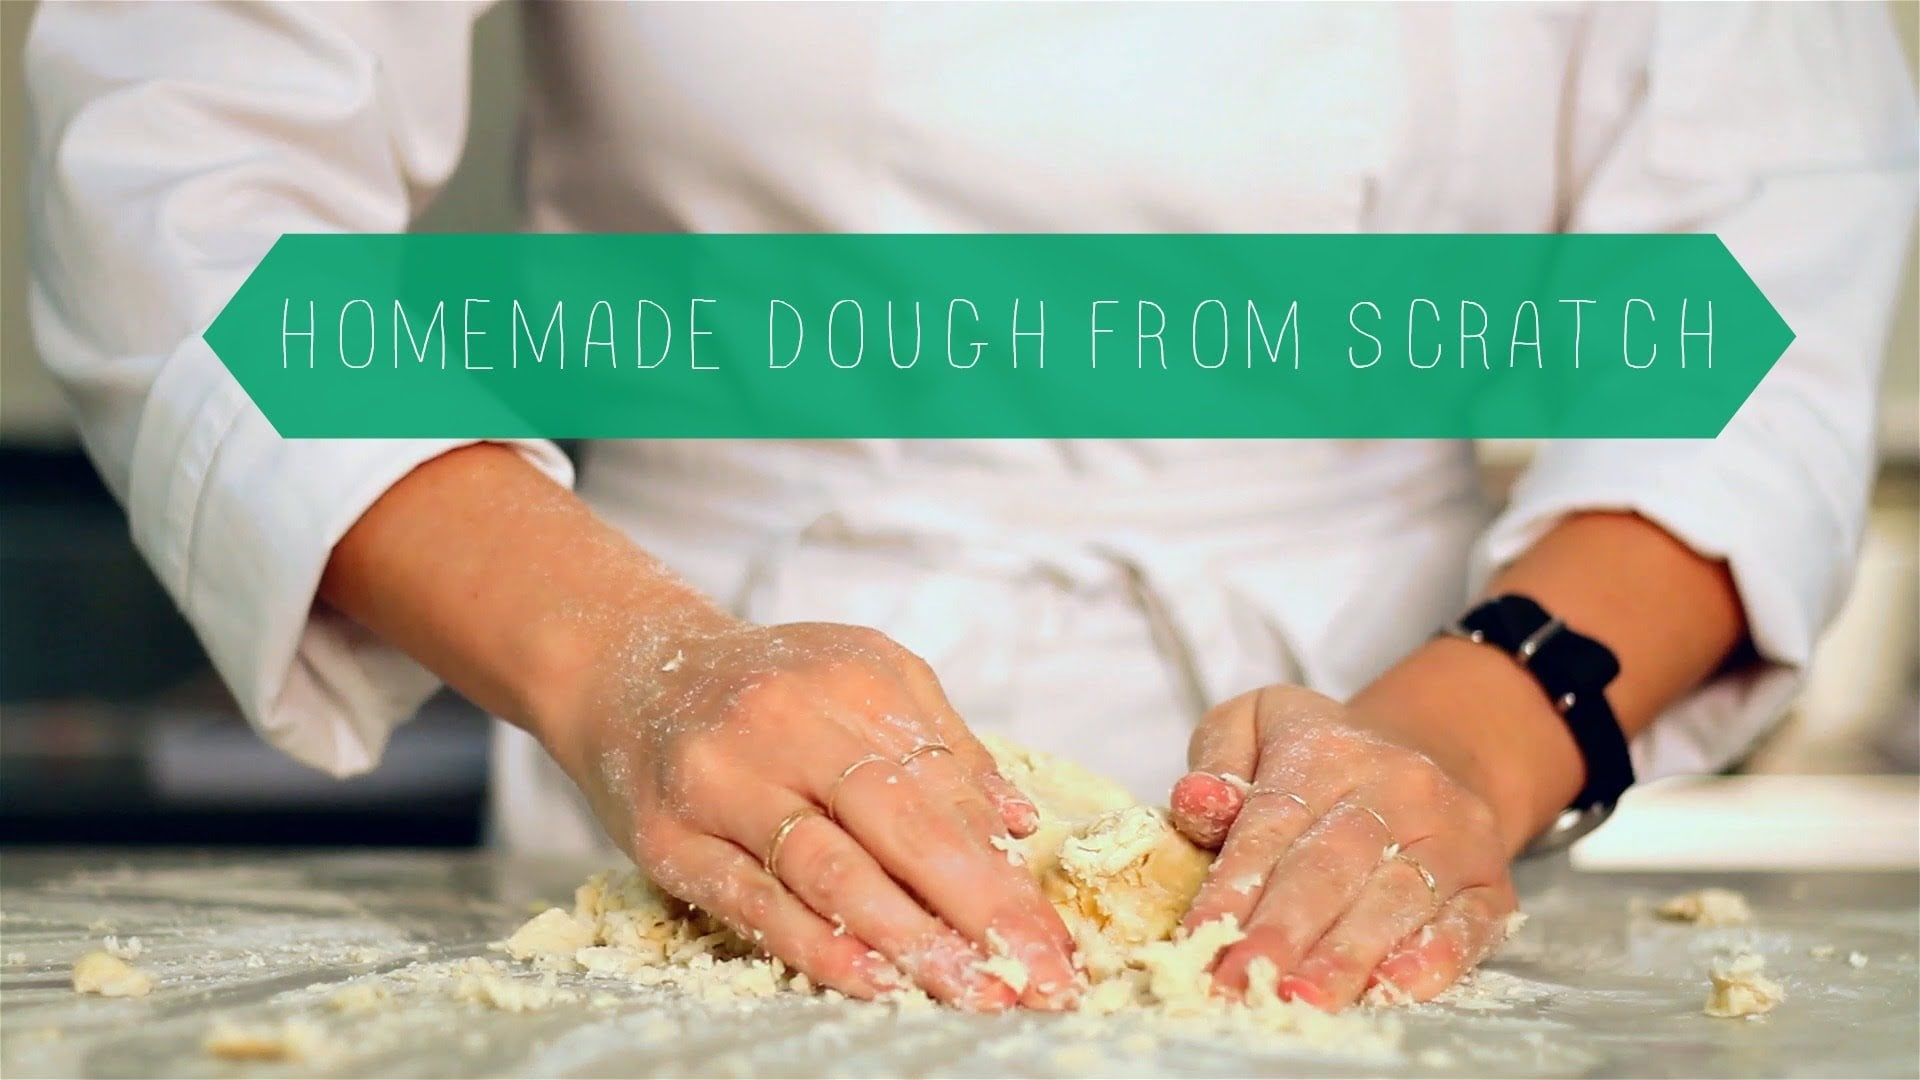 That's So Quiche! The Perfect Savory Dough from Scratch!